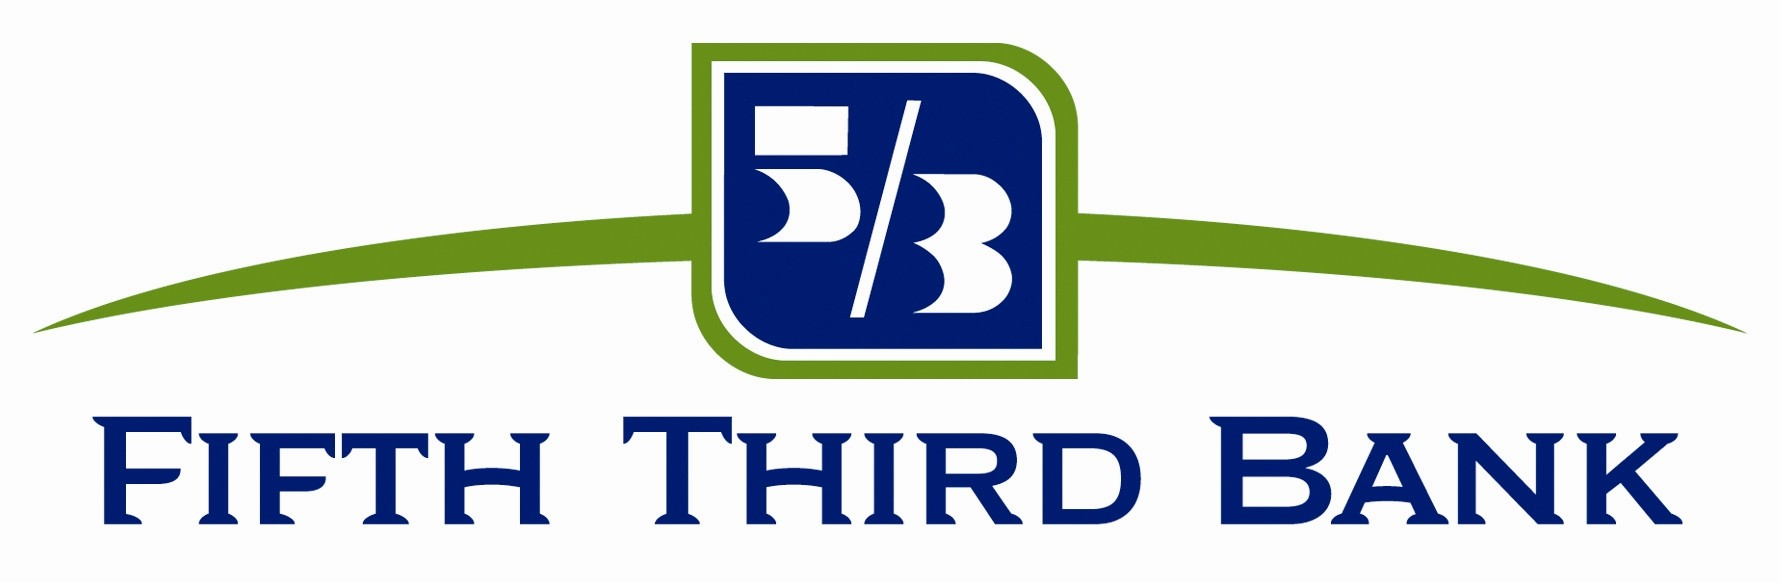 Fifth Third Bank Partners With QED Investors for FinTech Innovation